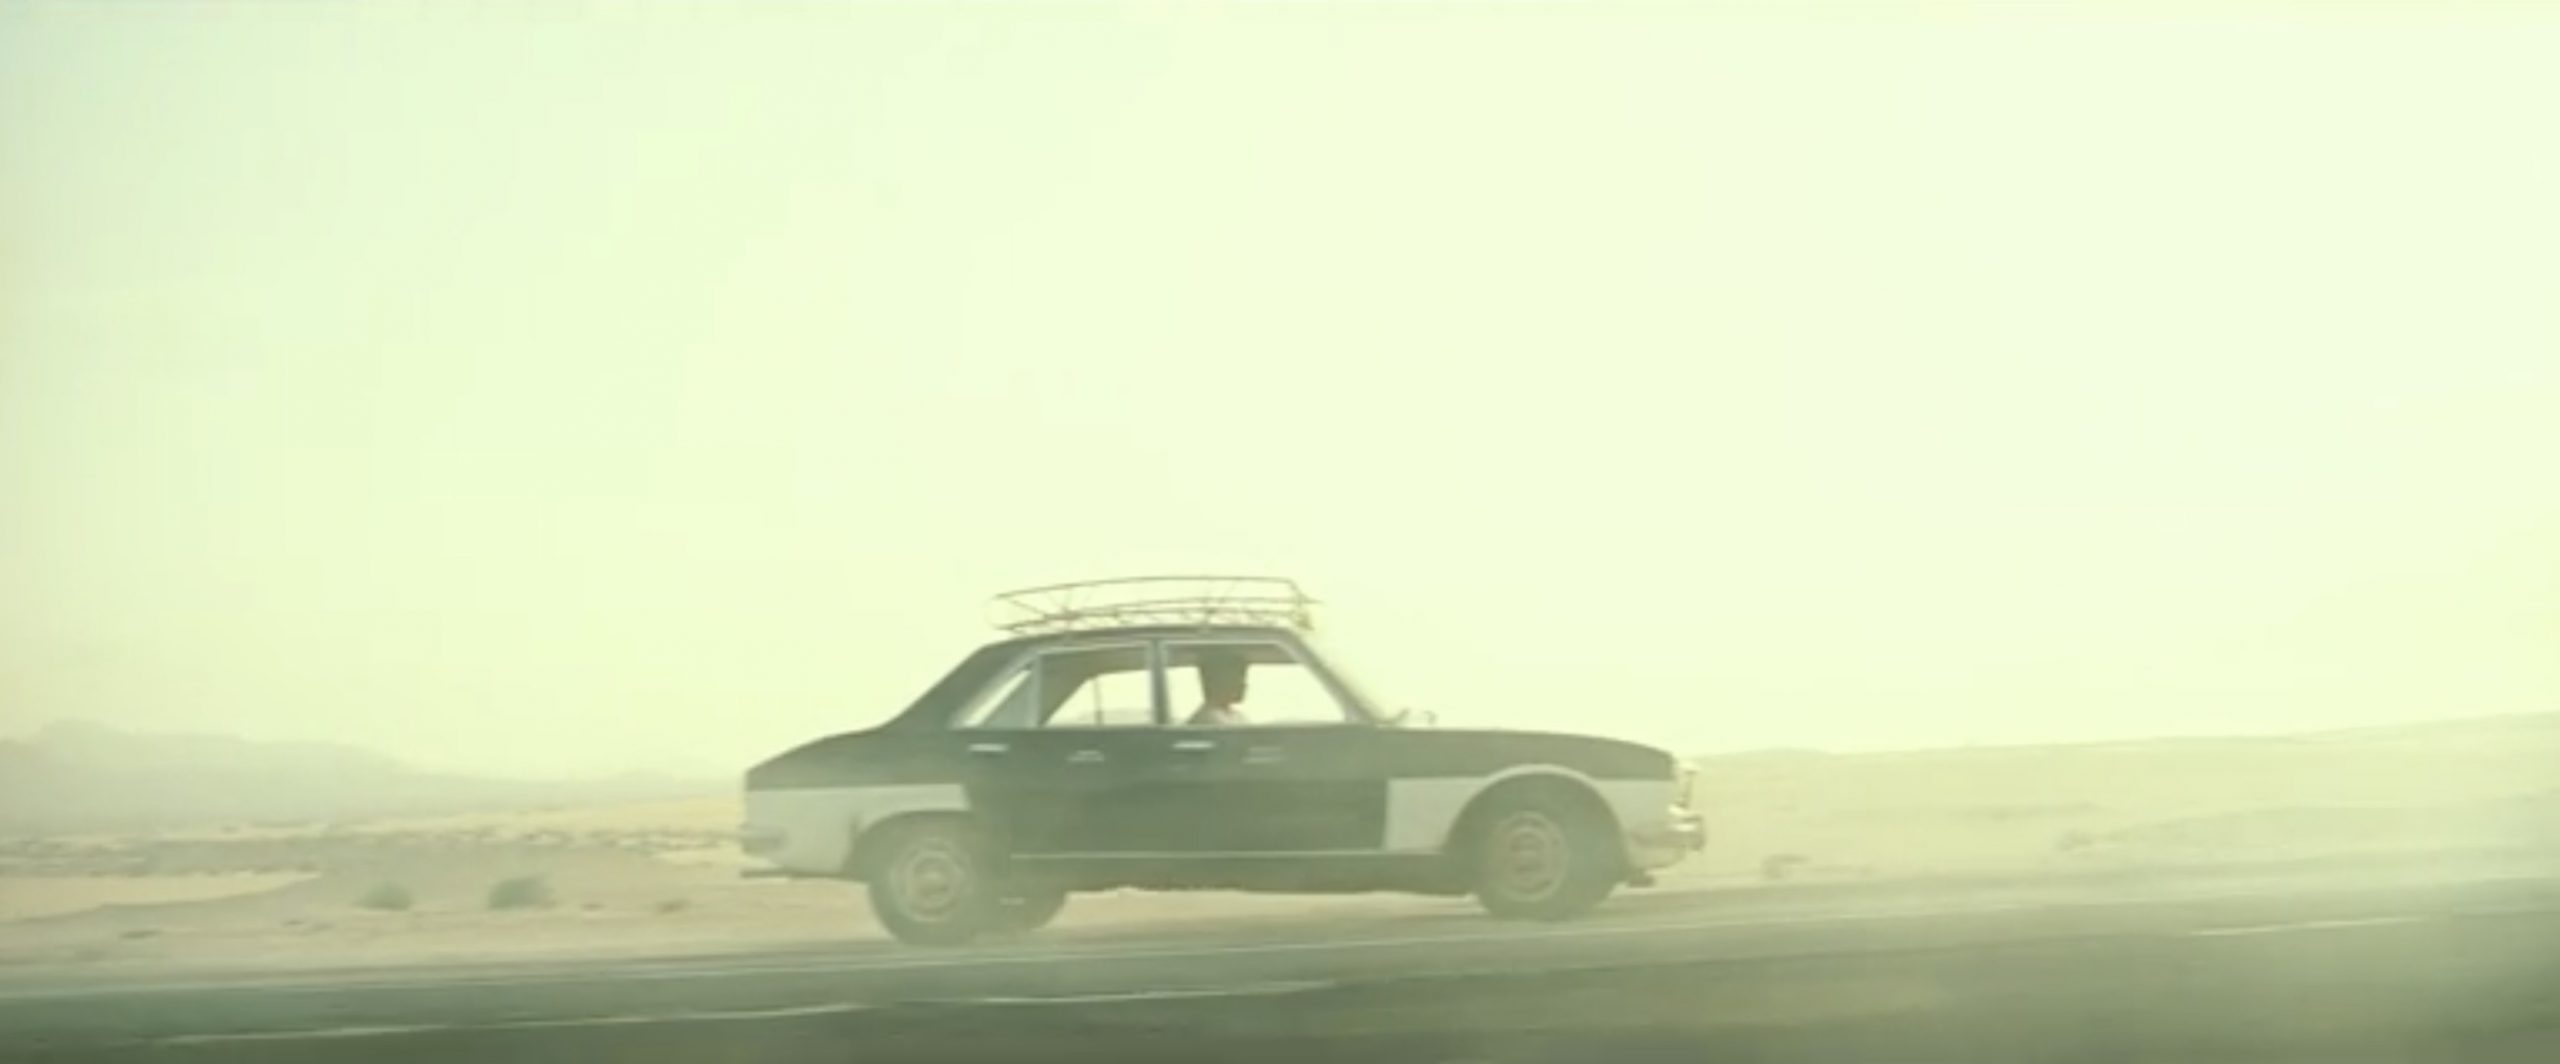 chris pine taxi chase scene dust cloud action